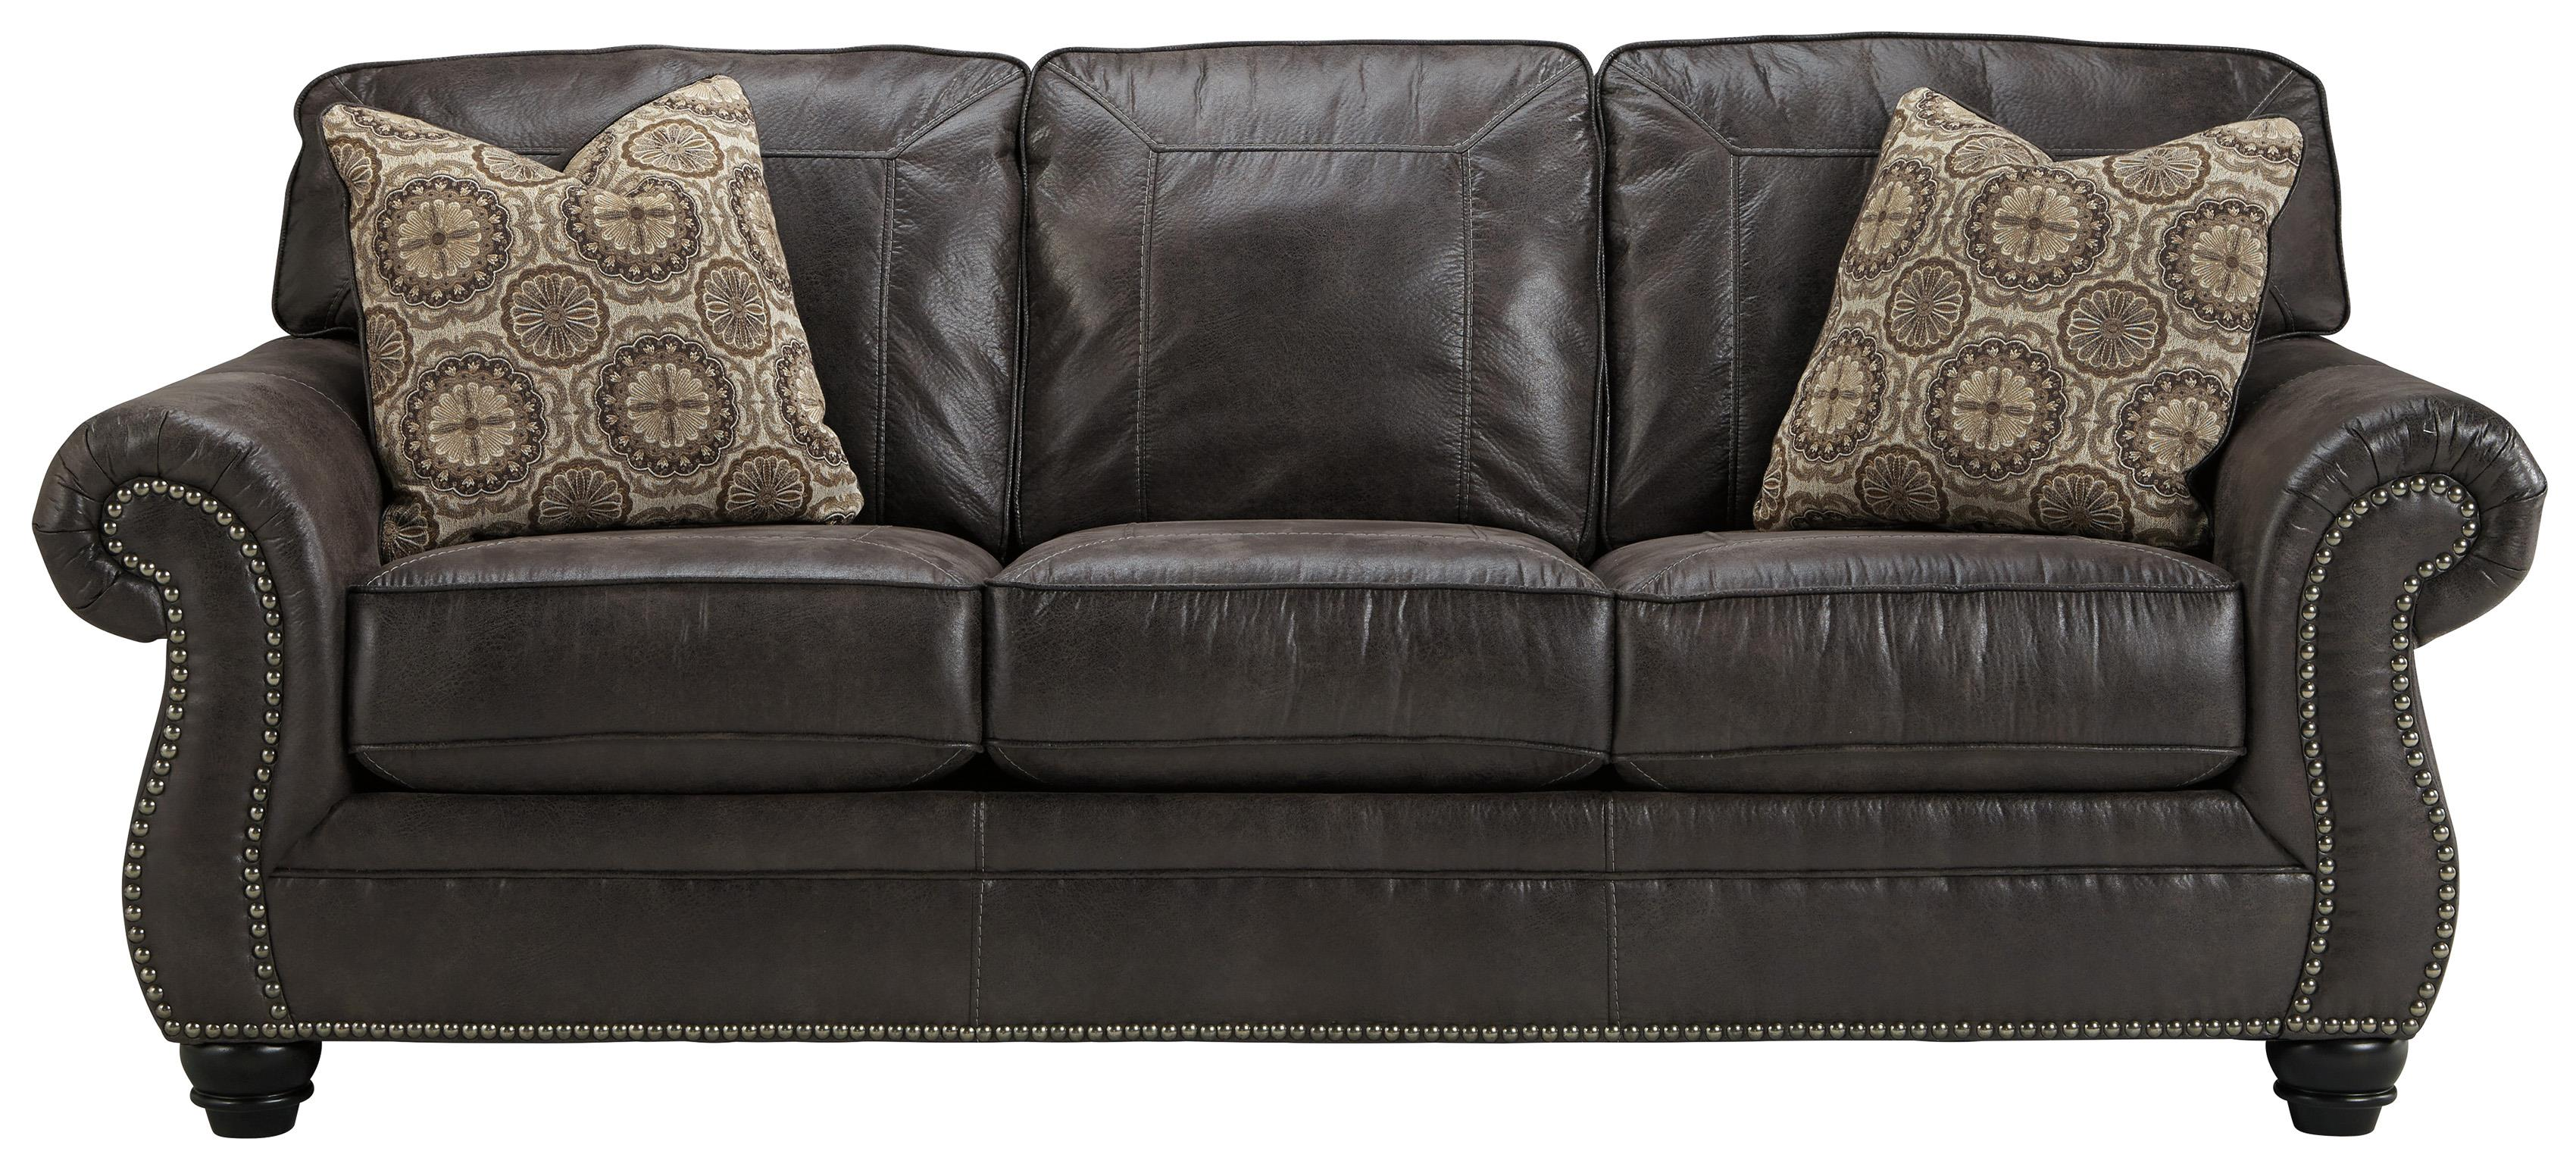 Benchcraft Breville 8000439 Faux Leather Queen Sofa Sleeper With Rolled Arms And Nailhead Trim